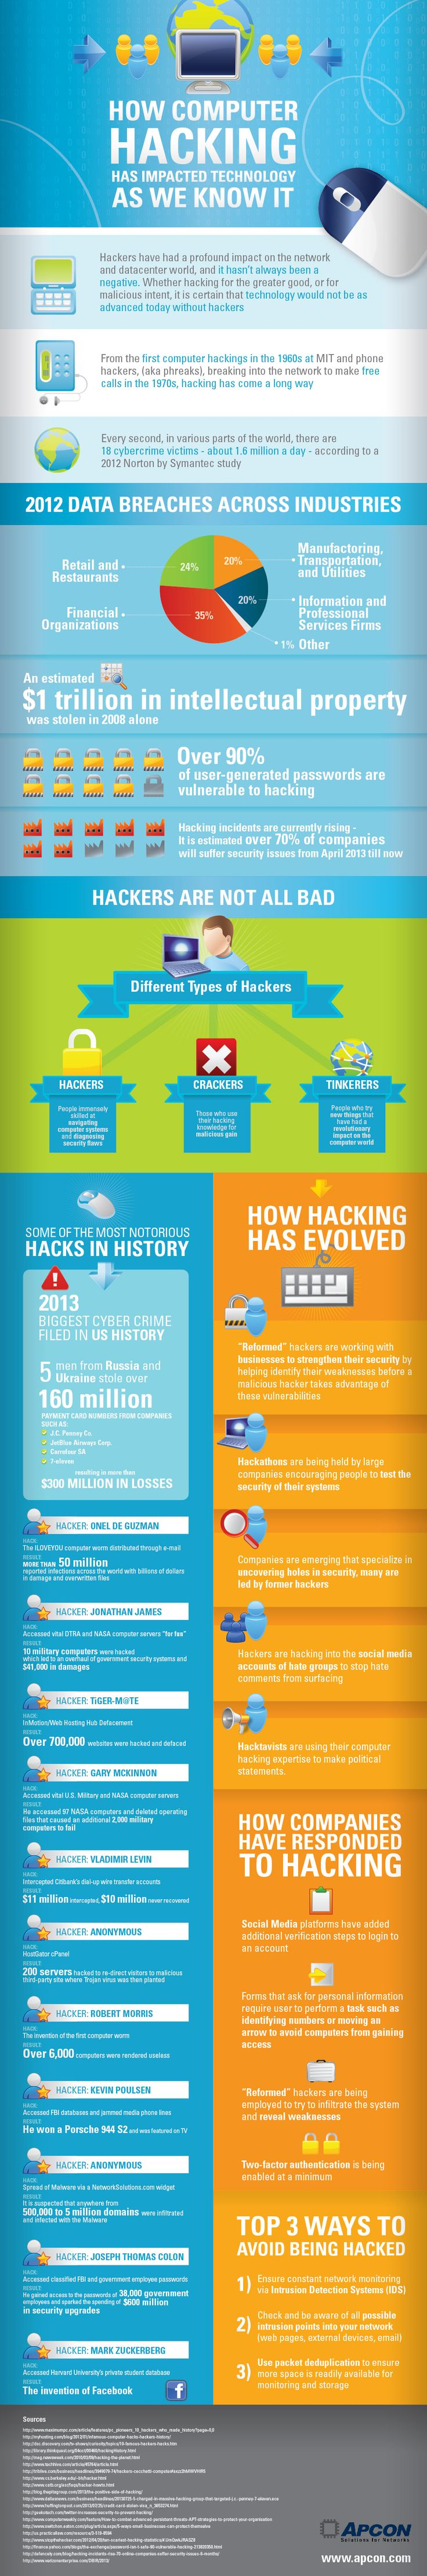 How Computer Hacking Has Impacted Technology As We Know It  #Infographic #Hacking #Computer